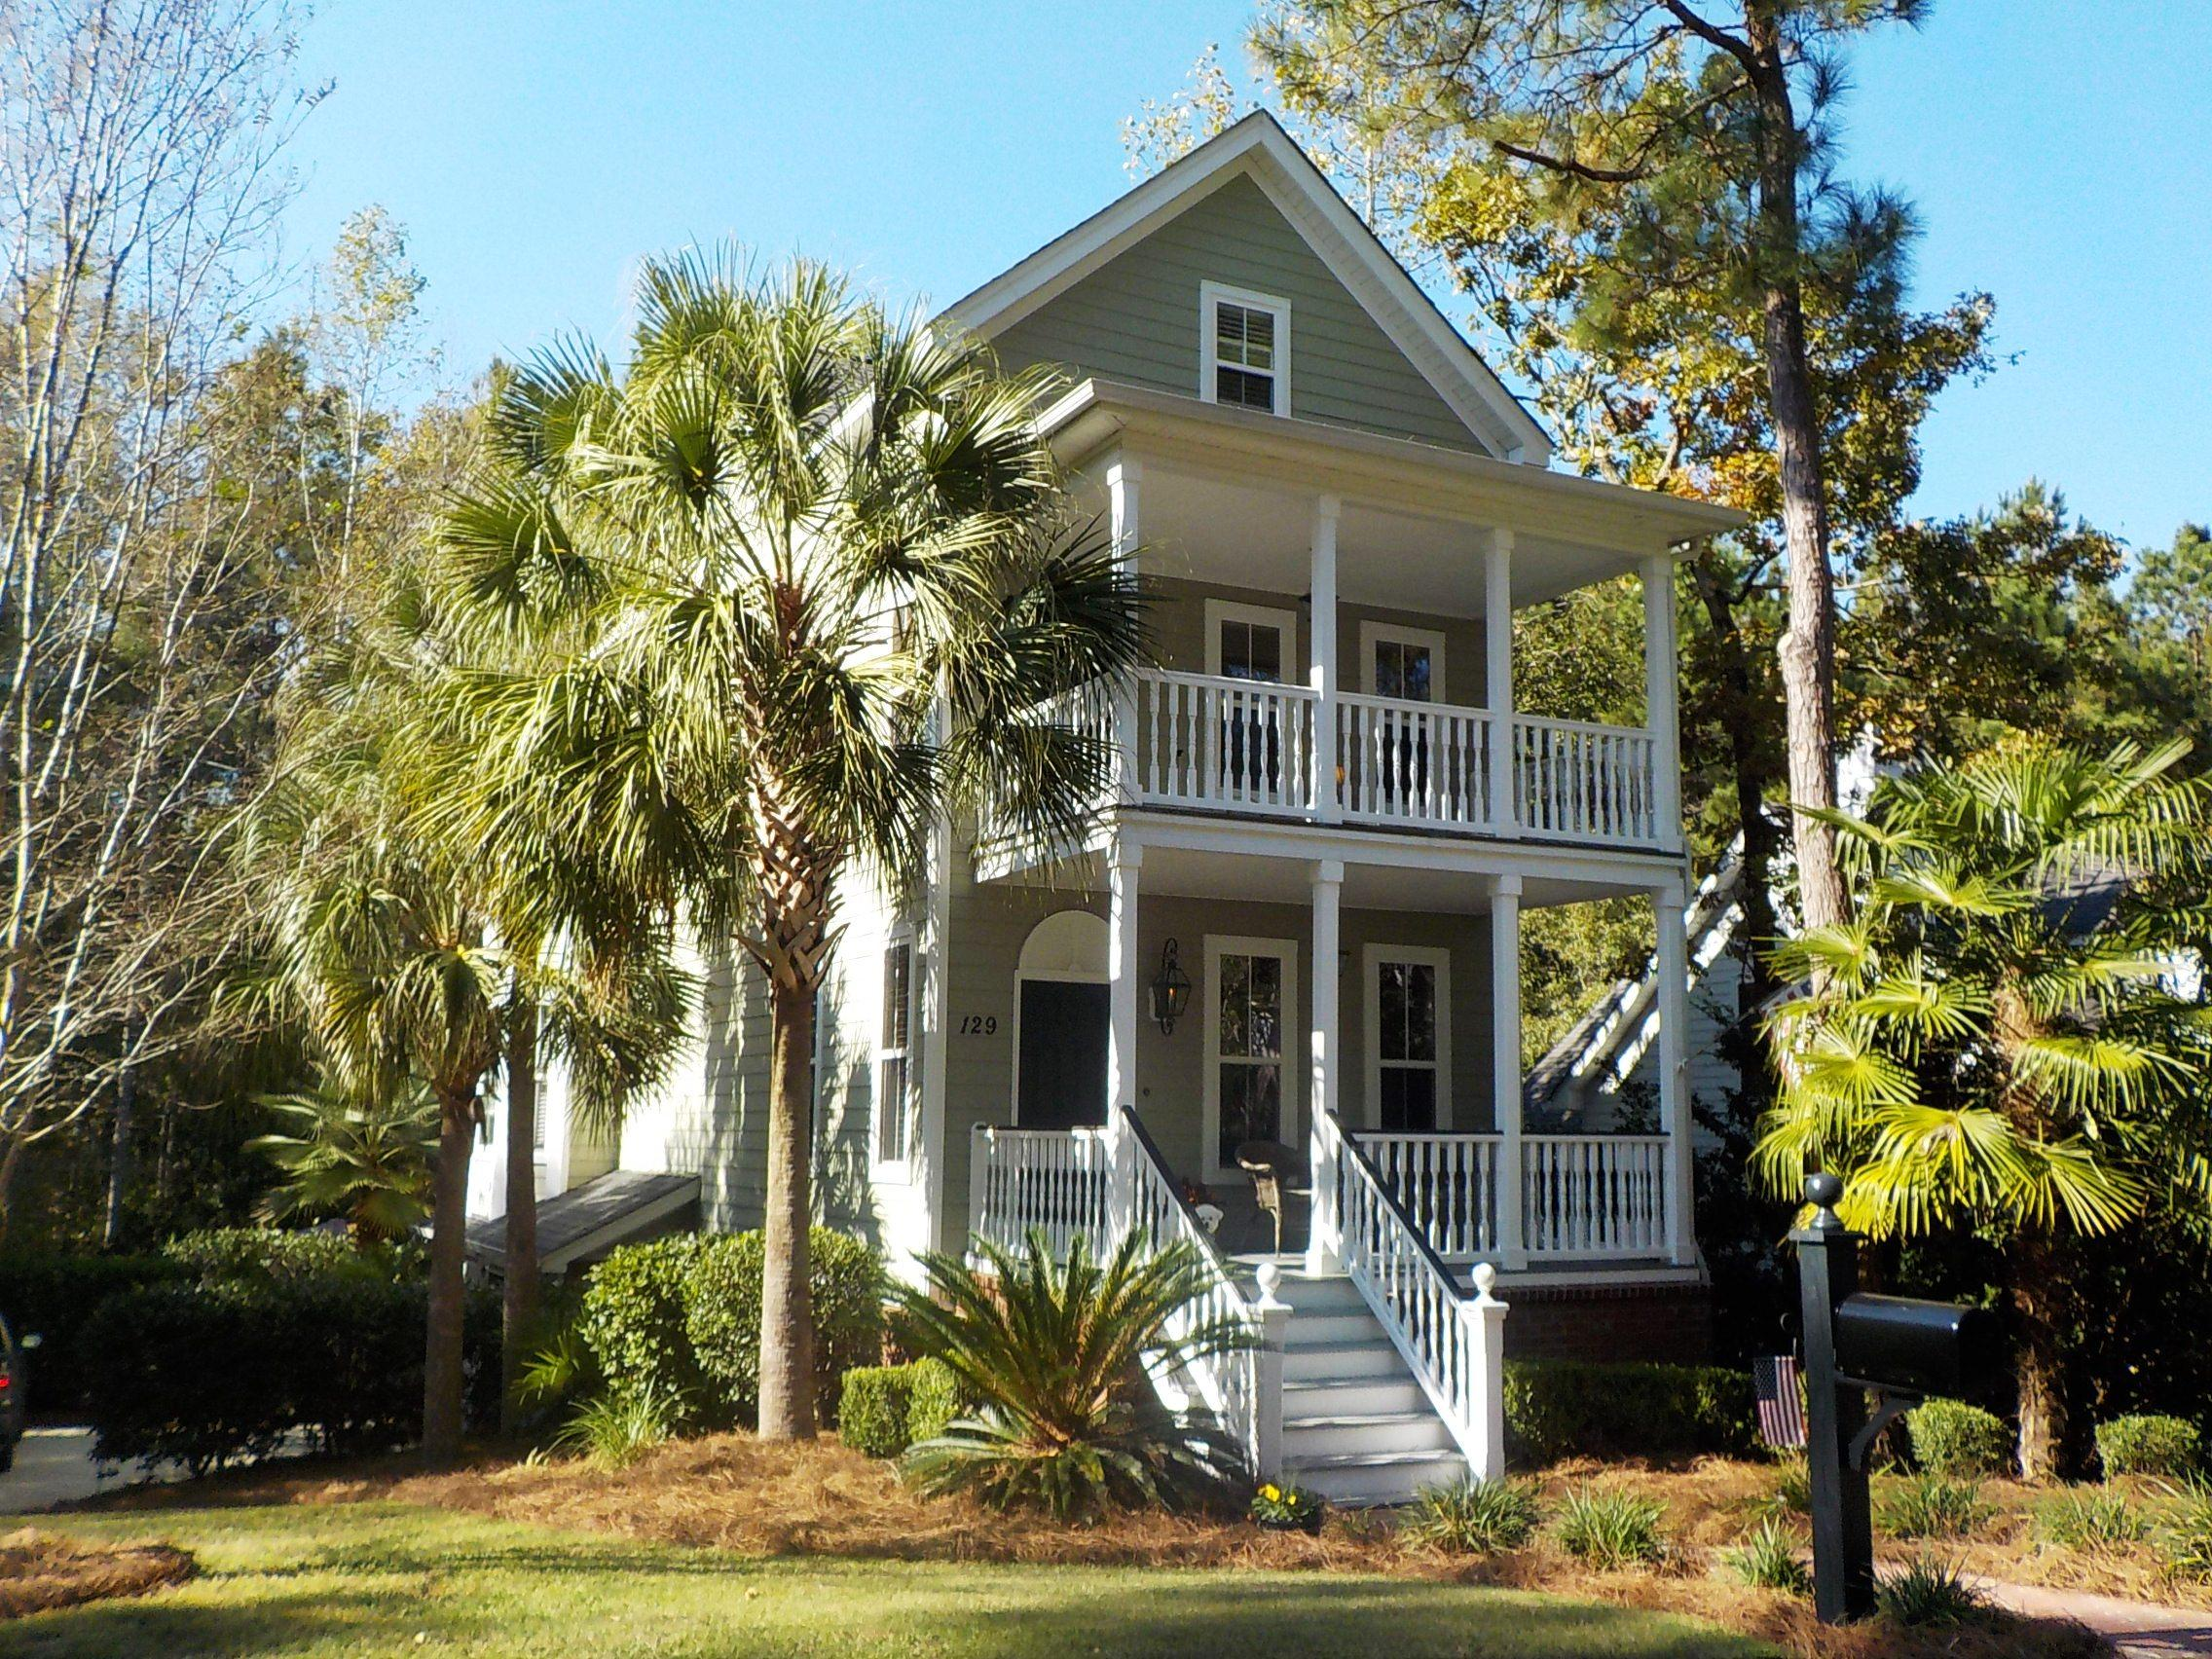 Cottages of Gahagan Homes For Sale - 129 White Pine, Summerville, SC - 0